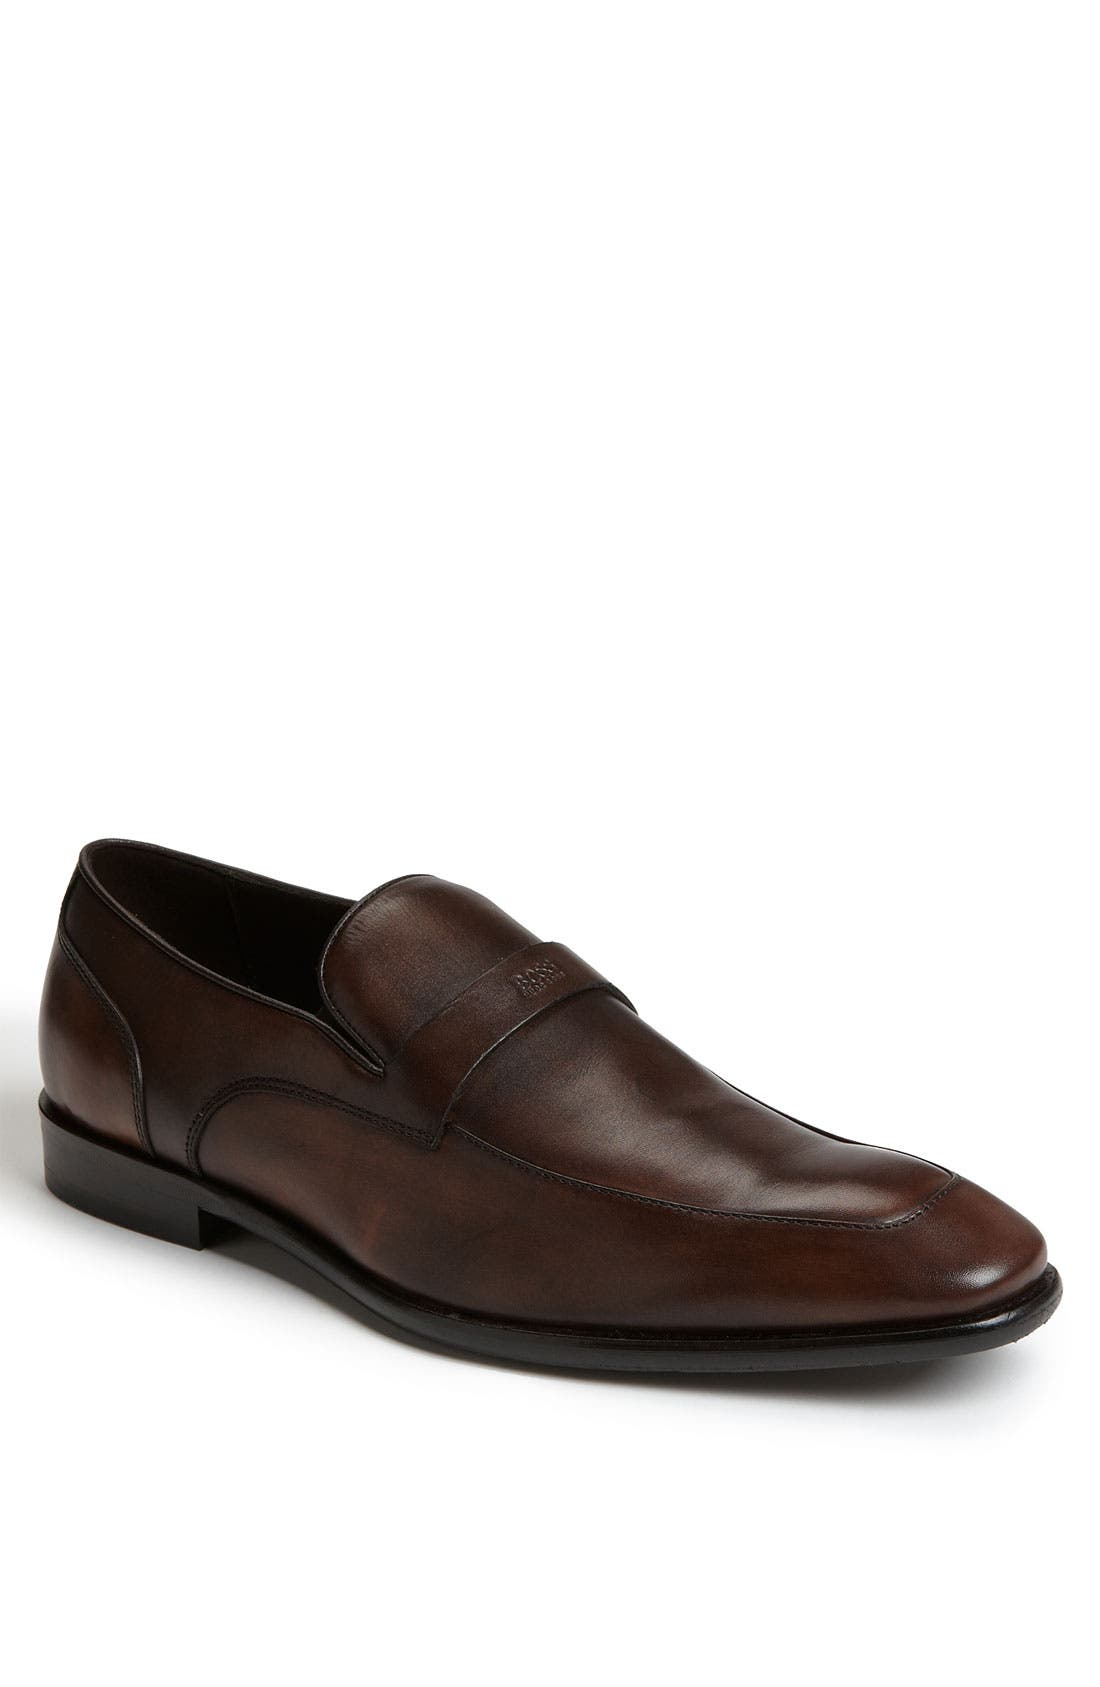 Main Image - BOSS HUGO BOSS 'Metero' Loafer